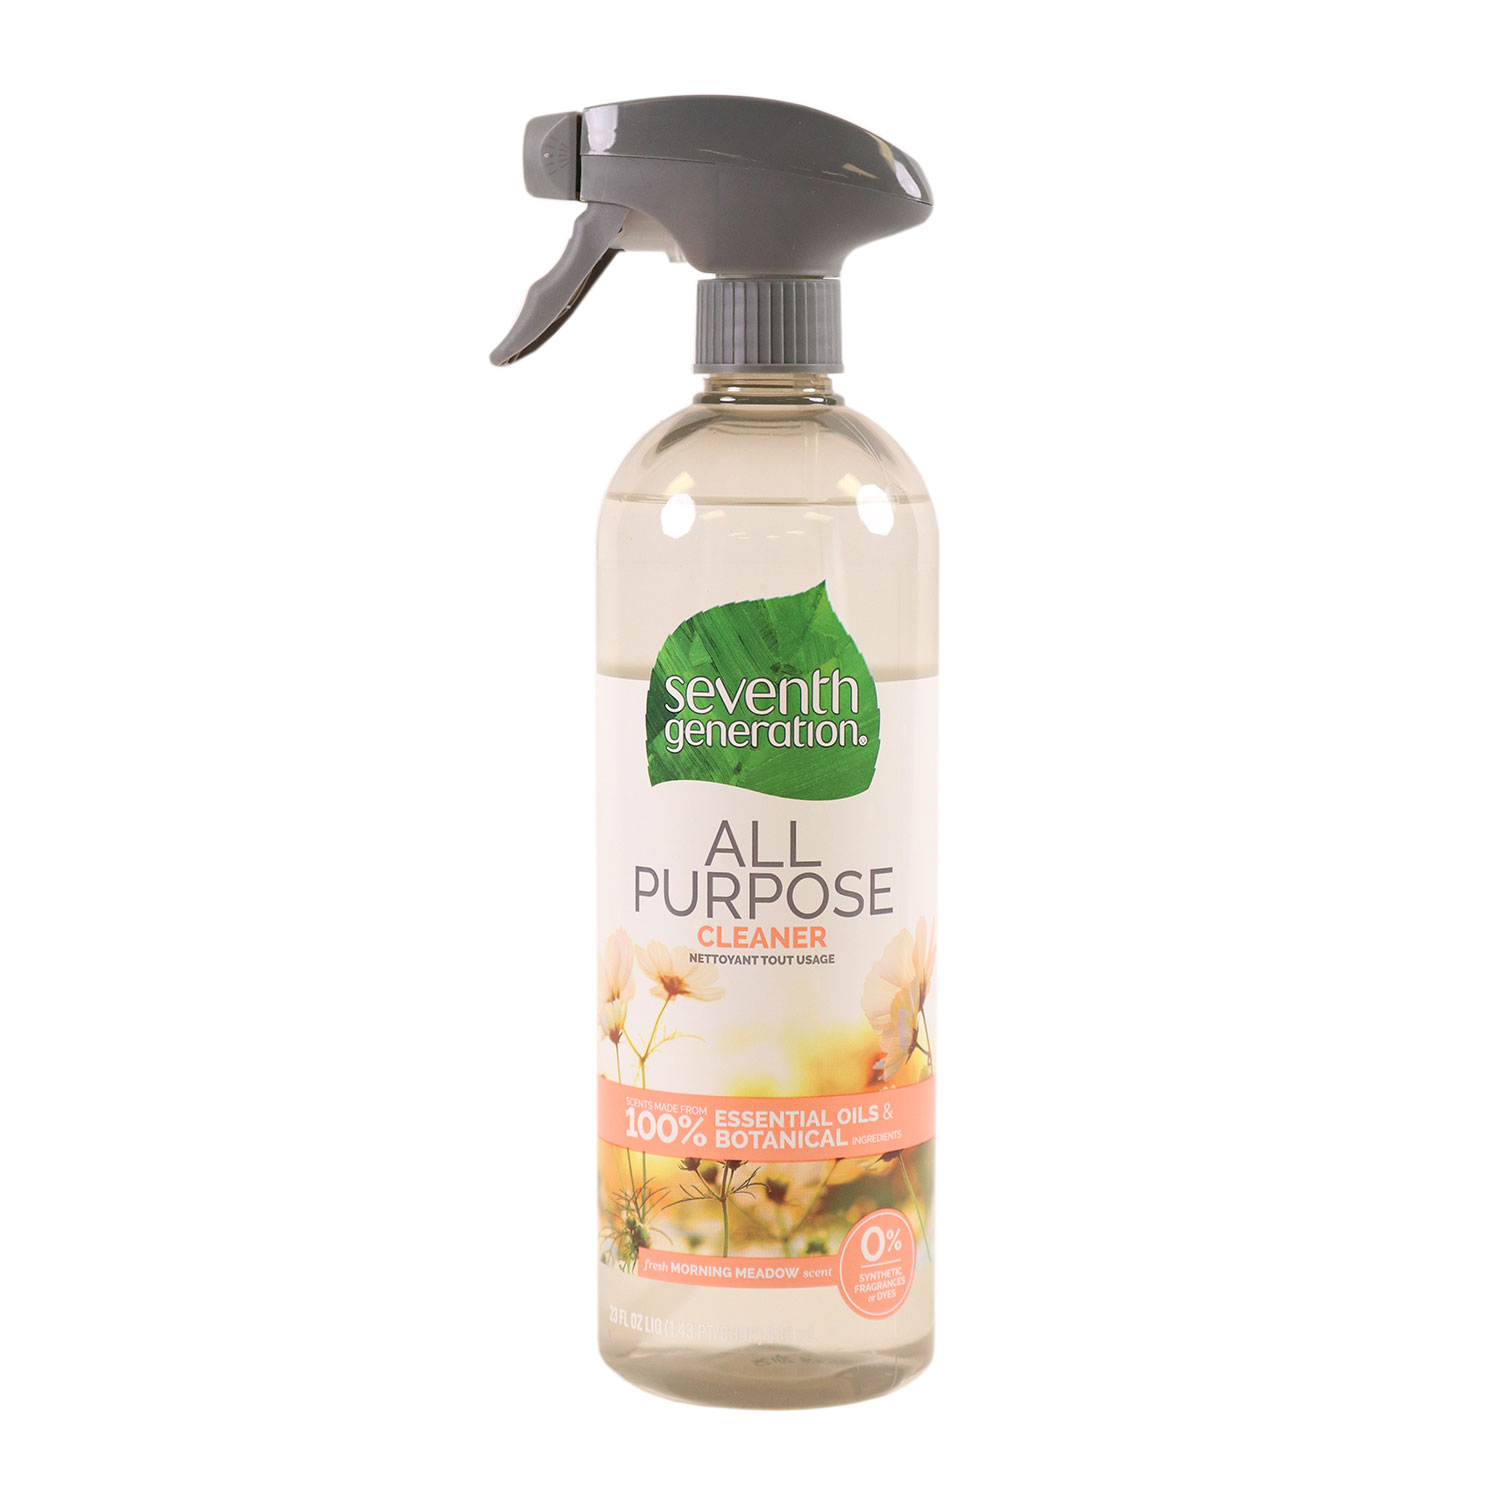 All Purpose Cleaner, Fresh Morning Meadow